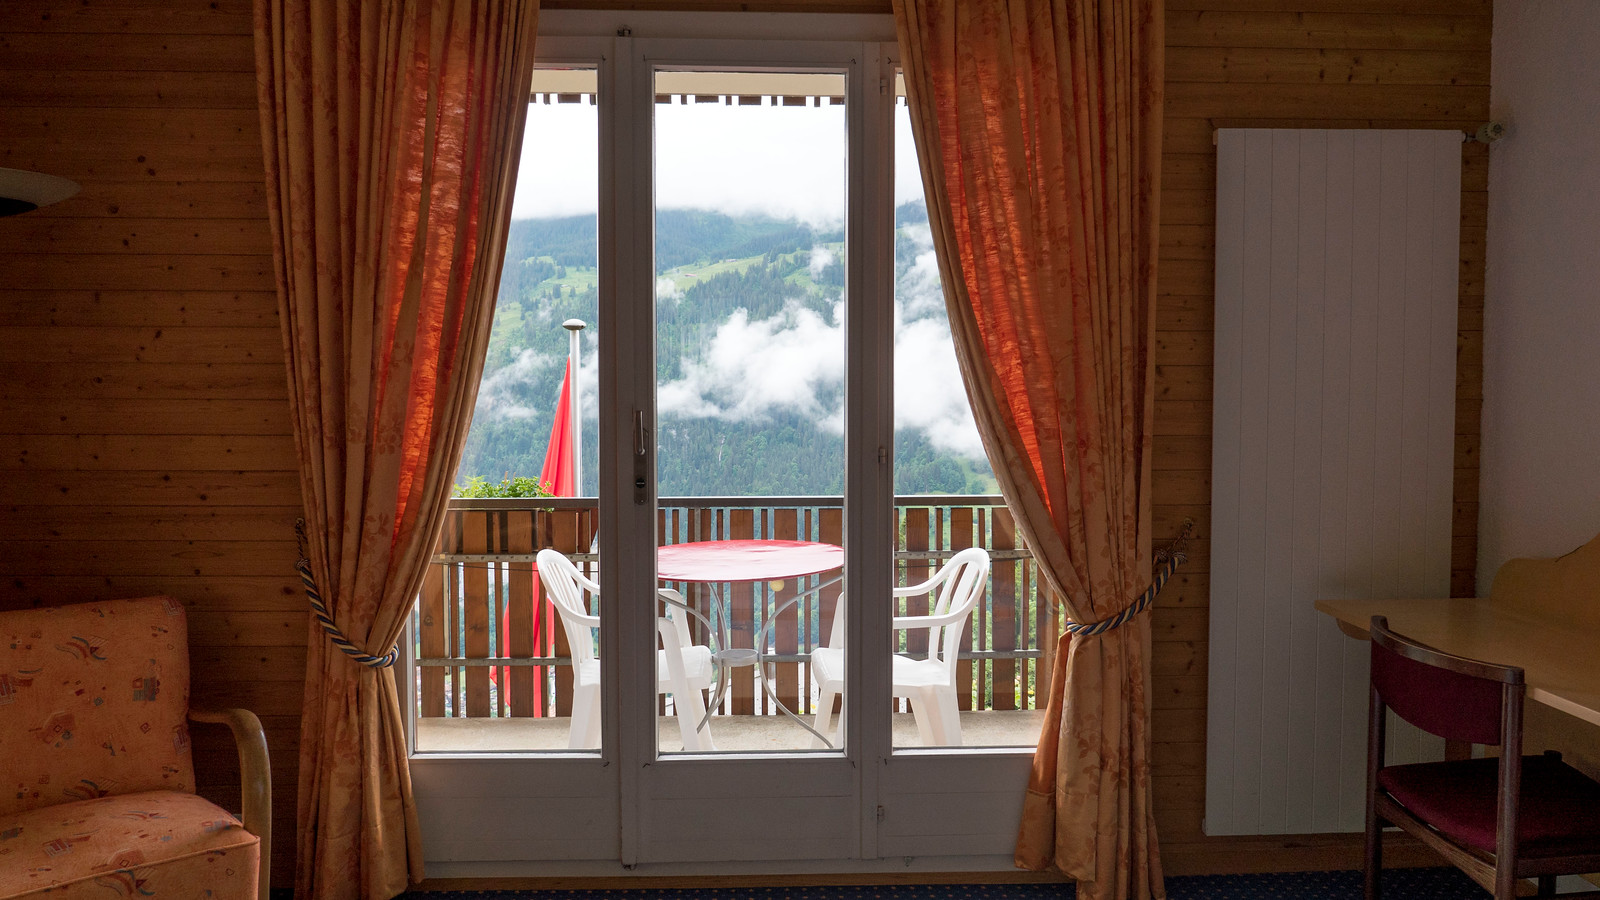 Hotel Bellevue Wengen - Scenic Mountain Hotel in Wengen, Switzerland